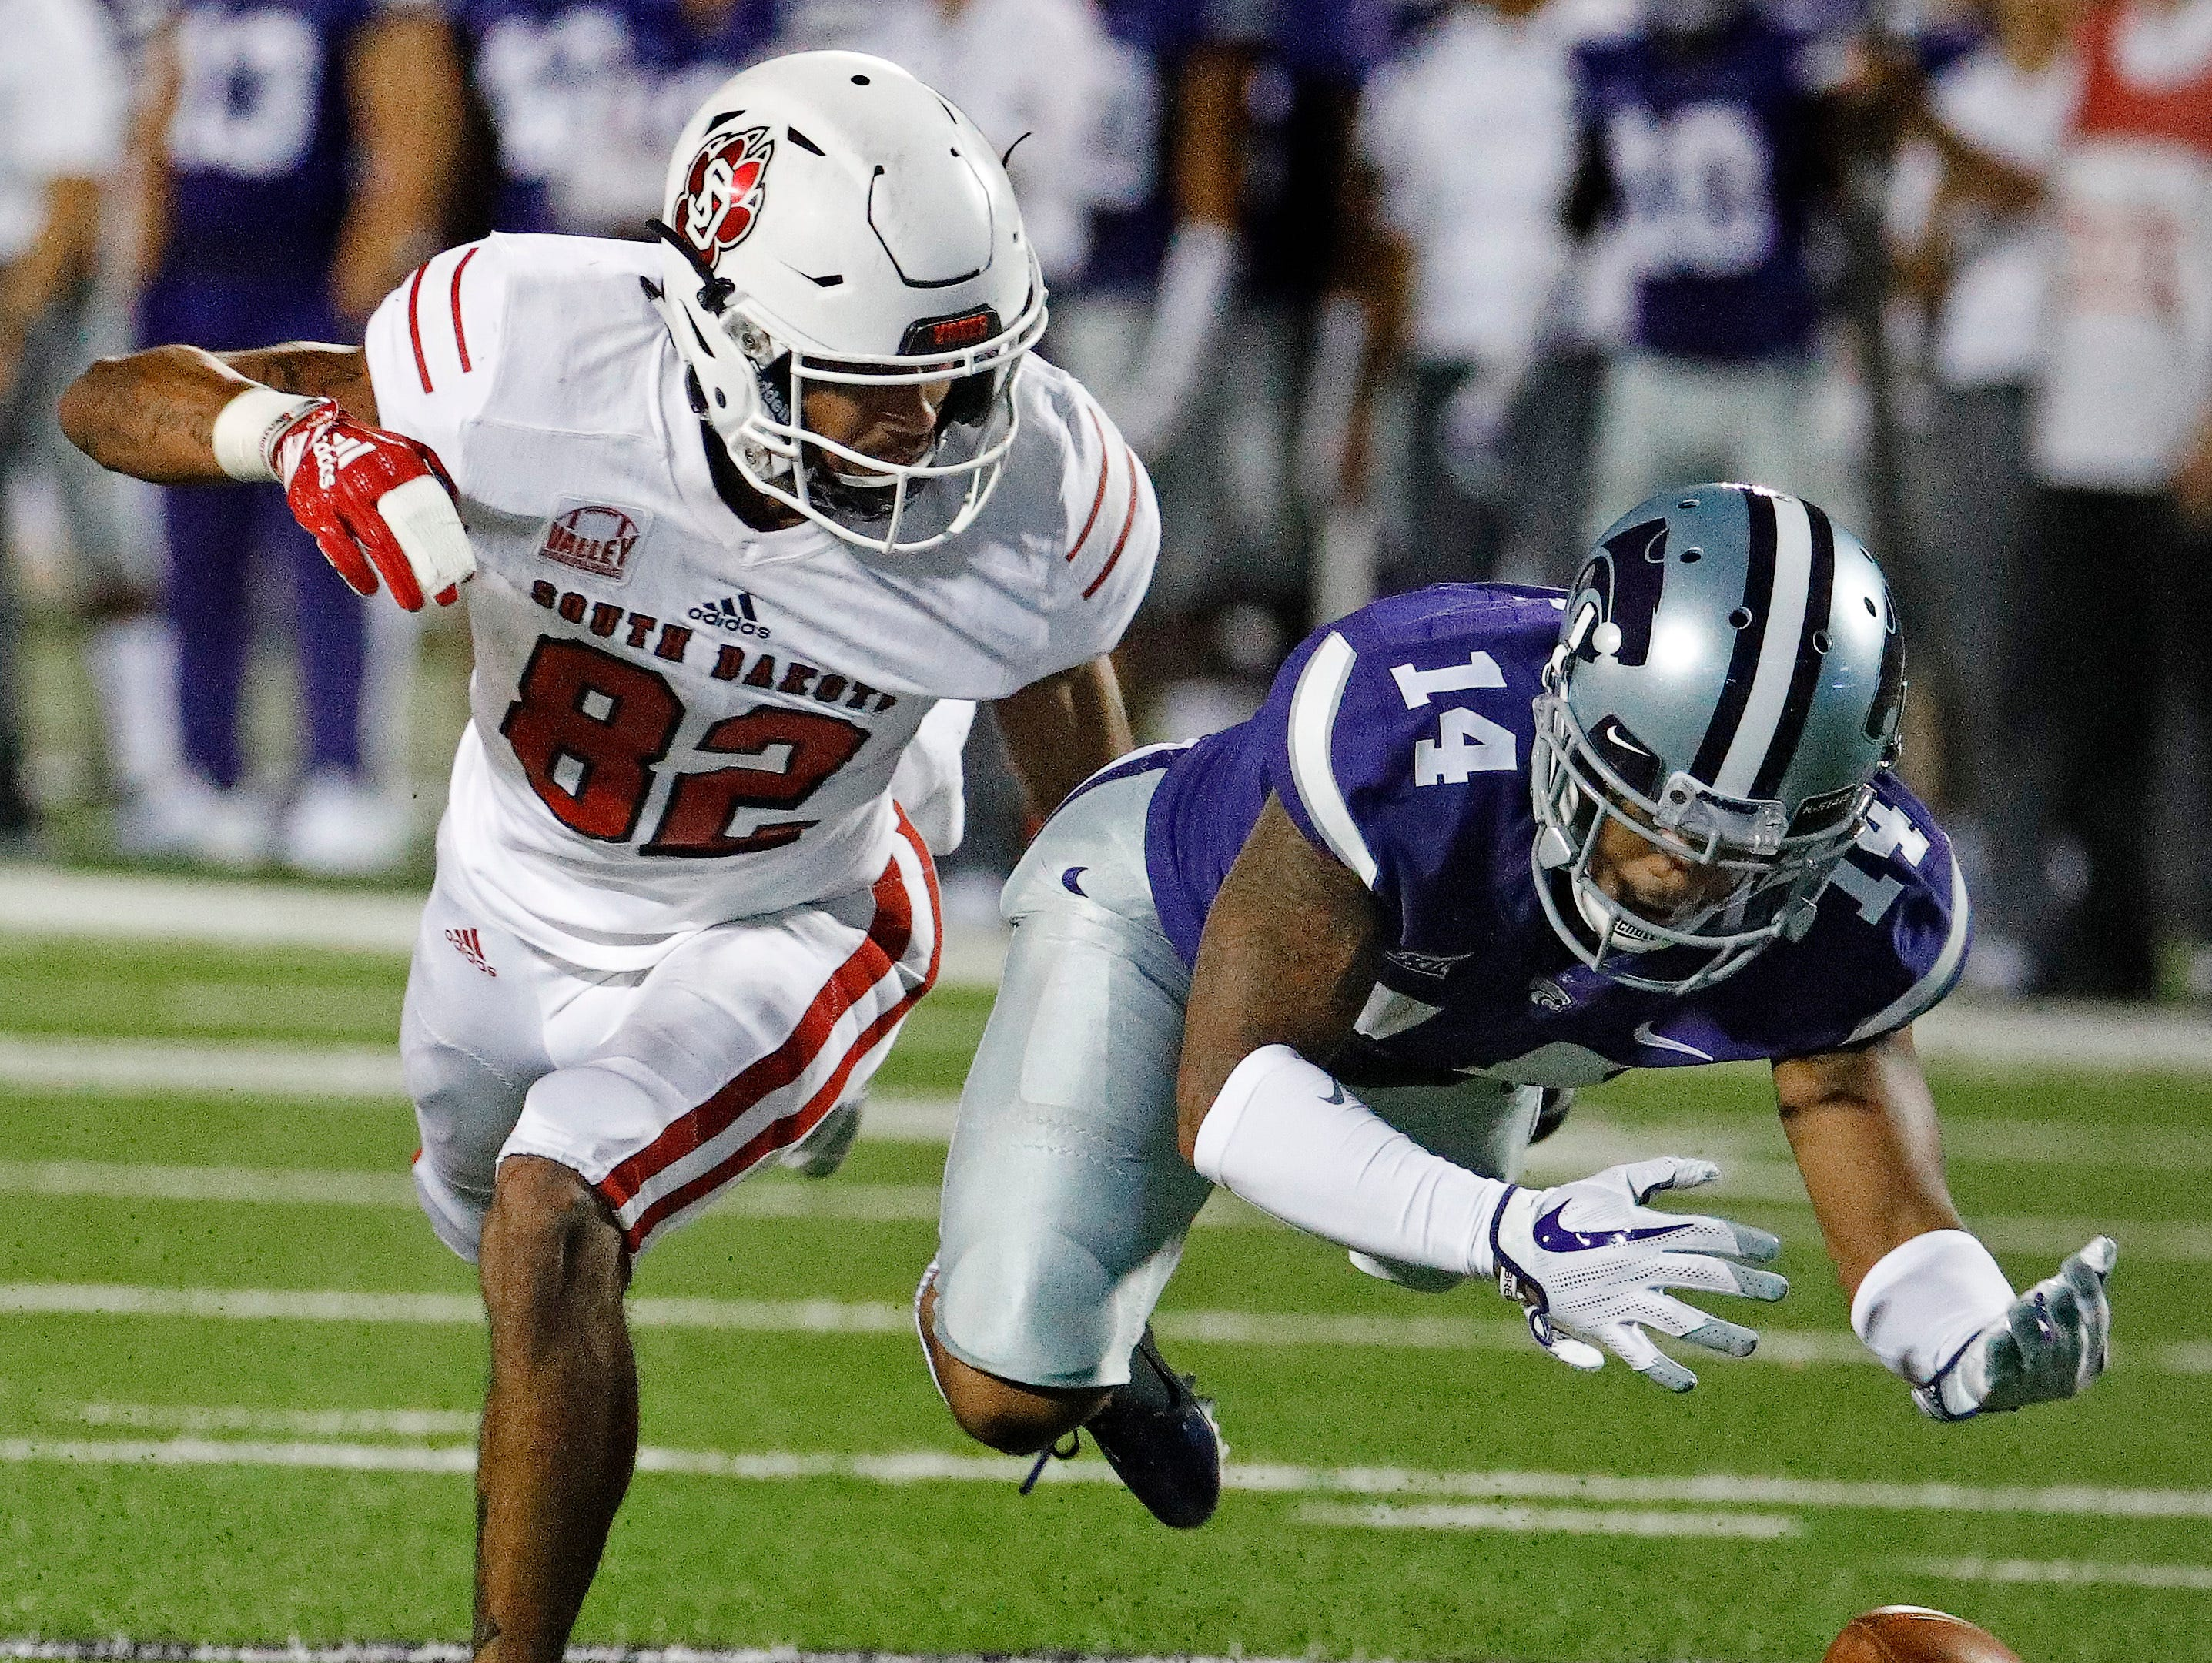 Kansas State defensive back Kevion McGee (14) breaks up a pass intended for South Dakota wide receiver Dakarai Allen (82) during the second half of an NCAA college football game Saturday, Sept. 1, 2018, in Manhattan, Kan. Kansas State won 27-24. (AP Photo/Charlie Riedel)